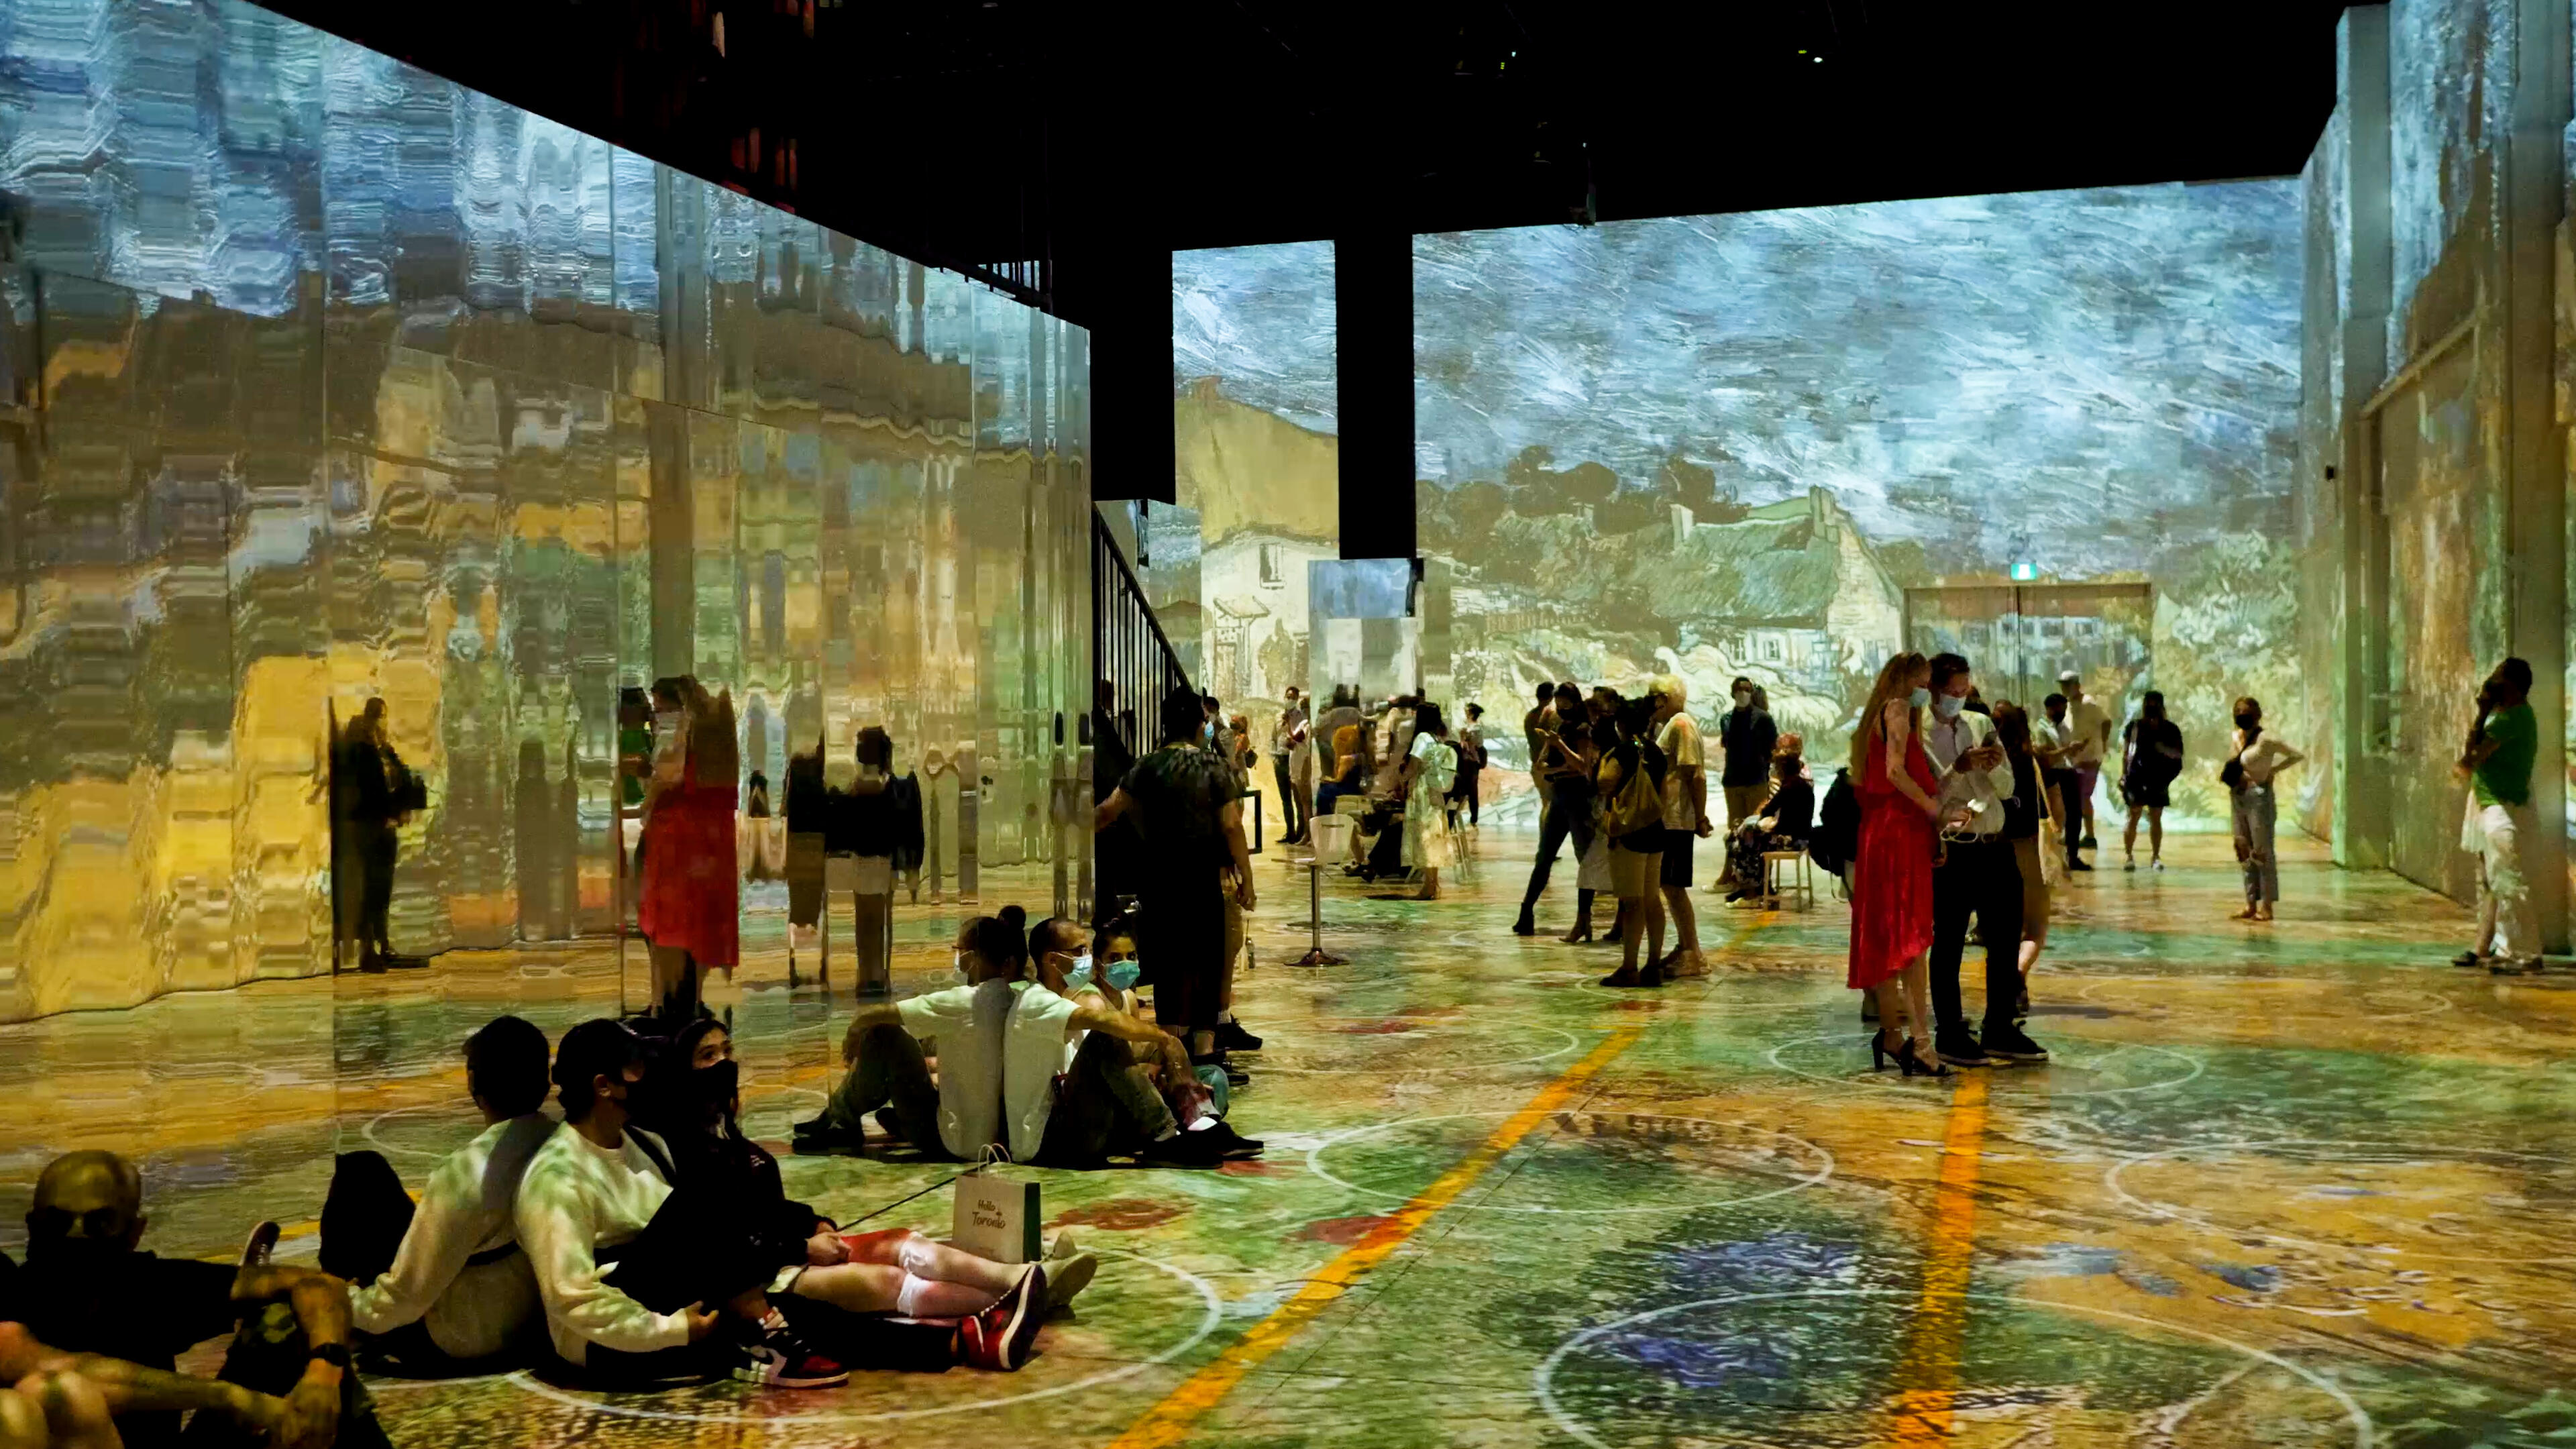 Video: Immersive Van Gogh puts you inside the artist's paintings